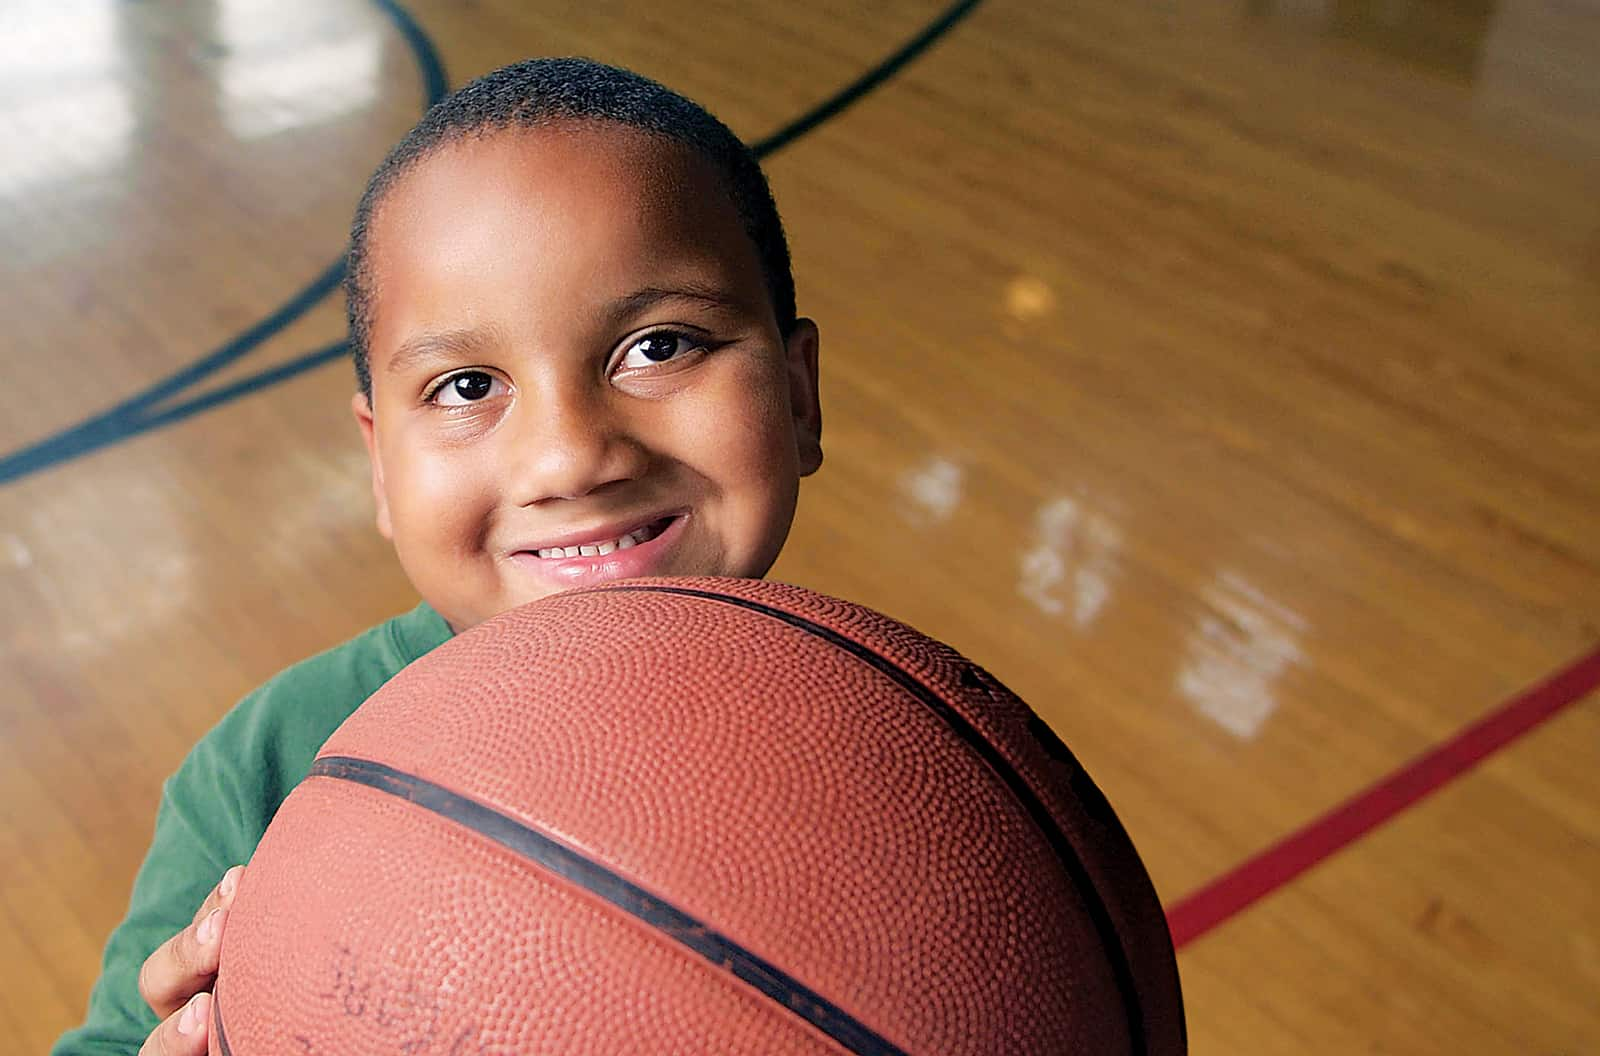 Boy holding basketball on court